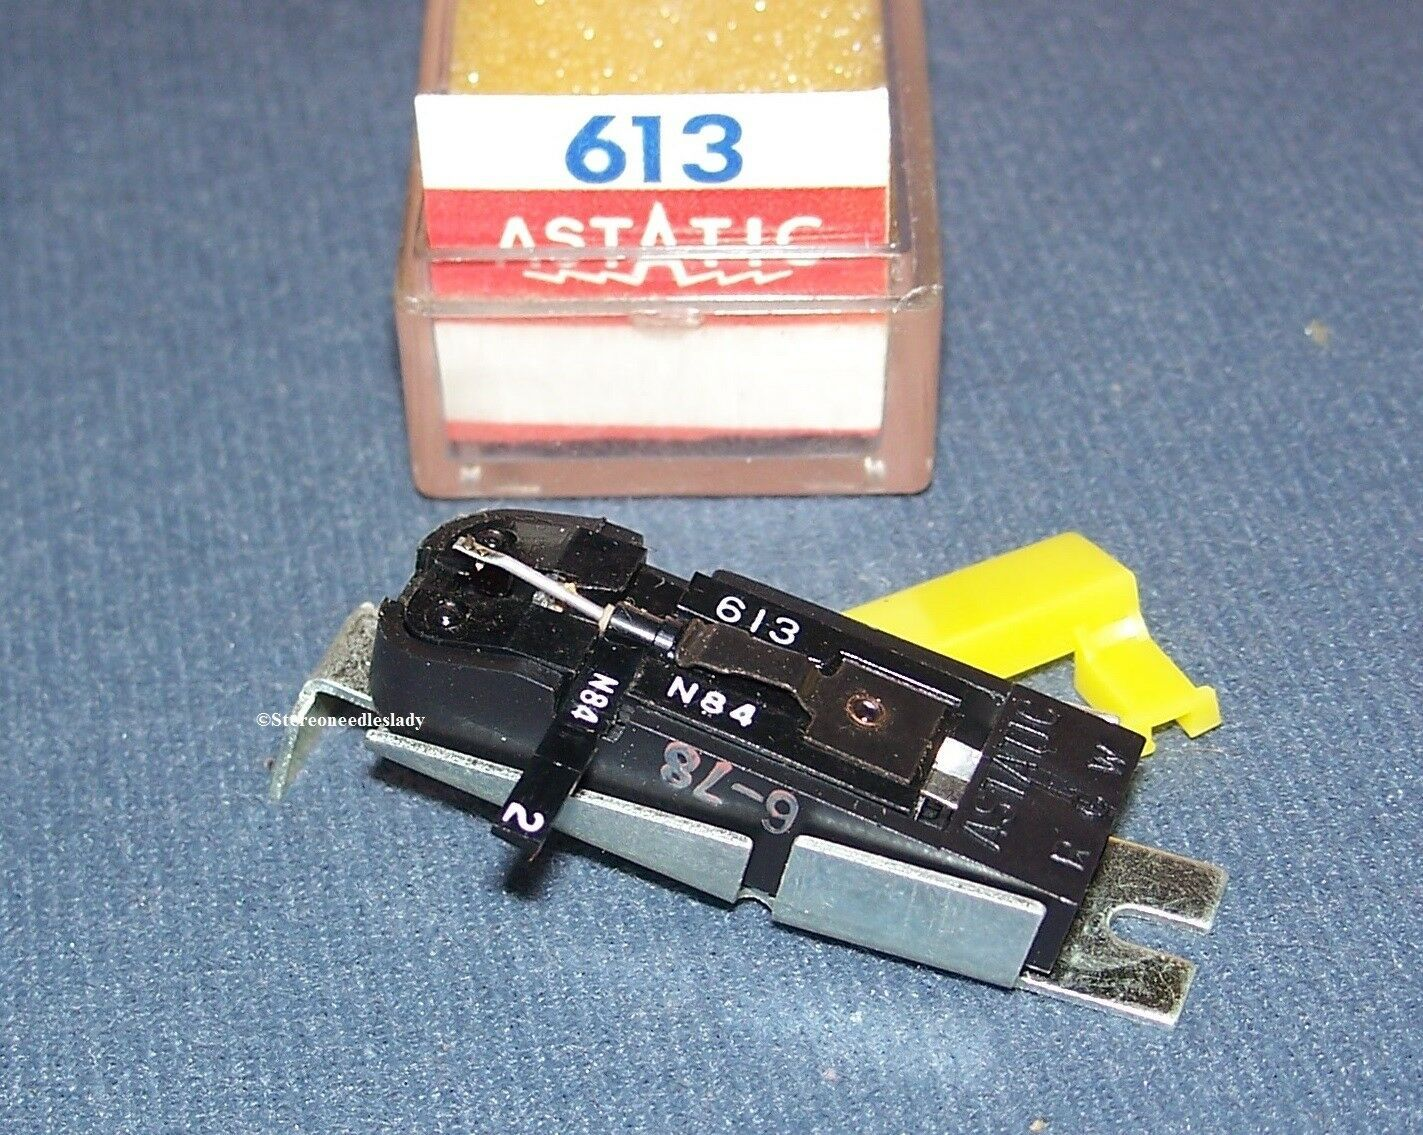 PHONOGRAPH RECORD NEEDLE CARTRIDGE Astatic 613 for EV 613D RCA 116931 RCA 204-5